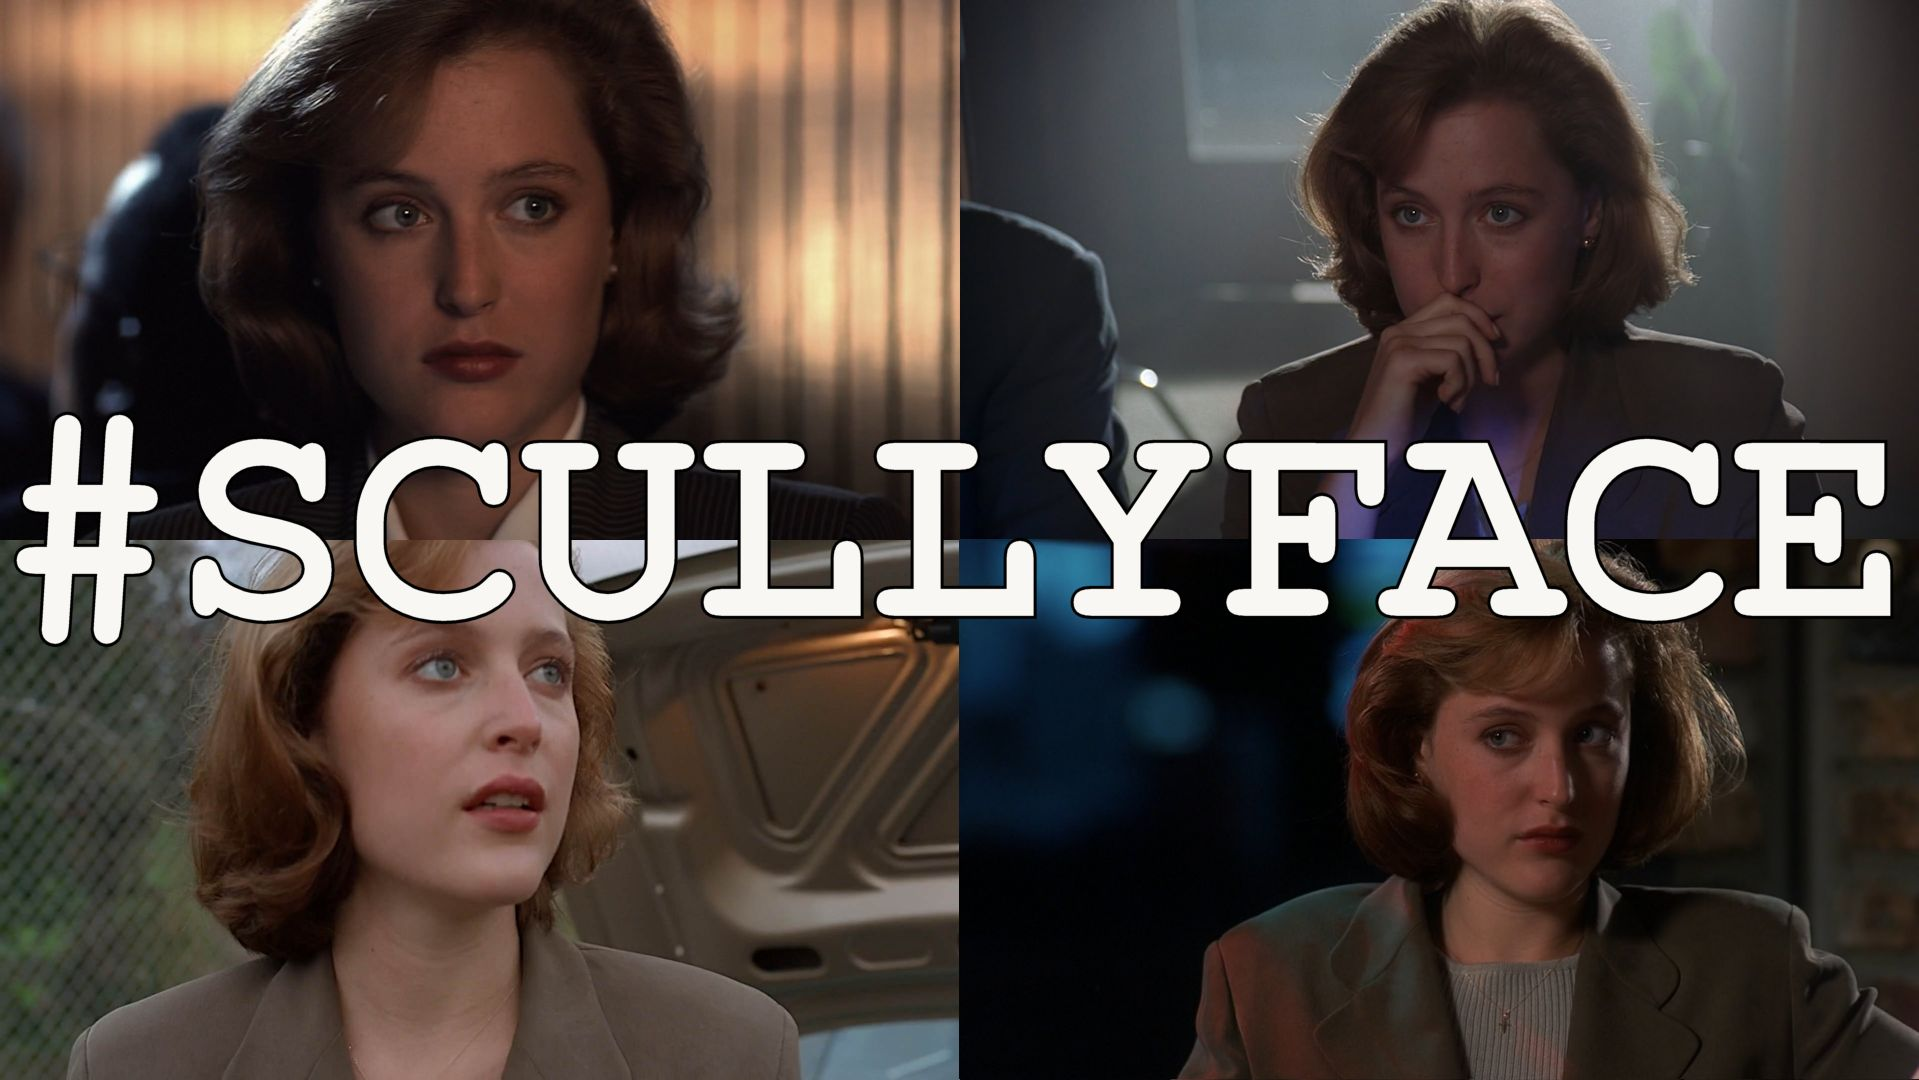 My name's Scullyface and I think you're crazy.